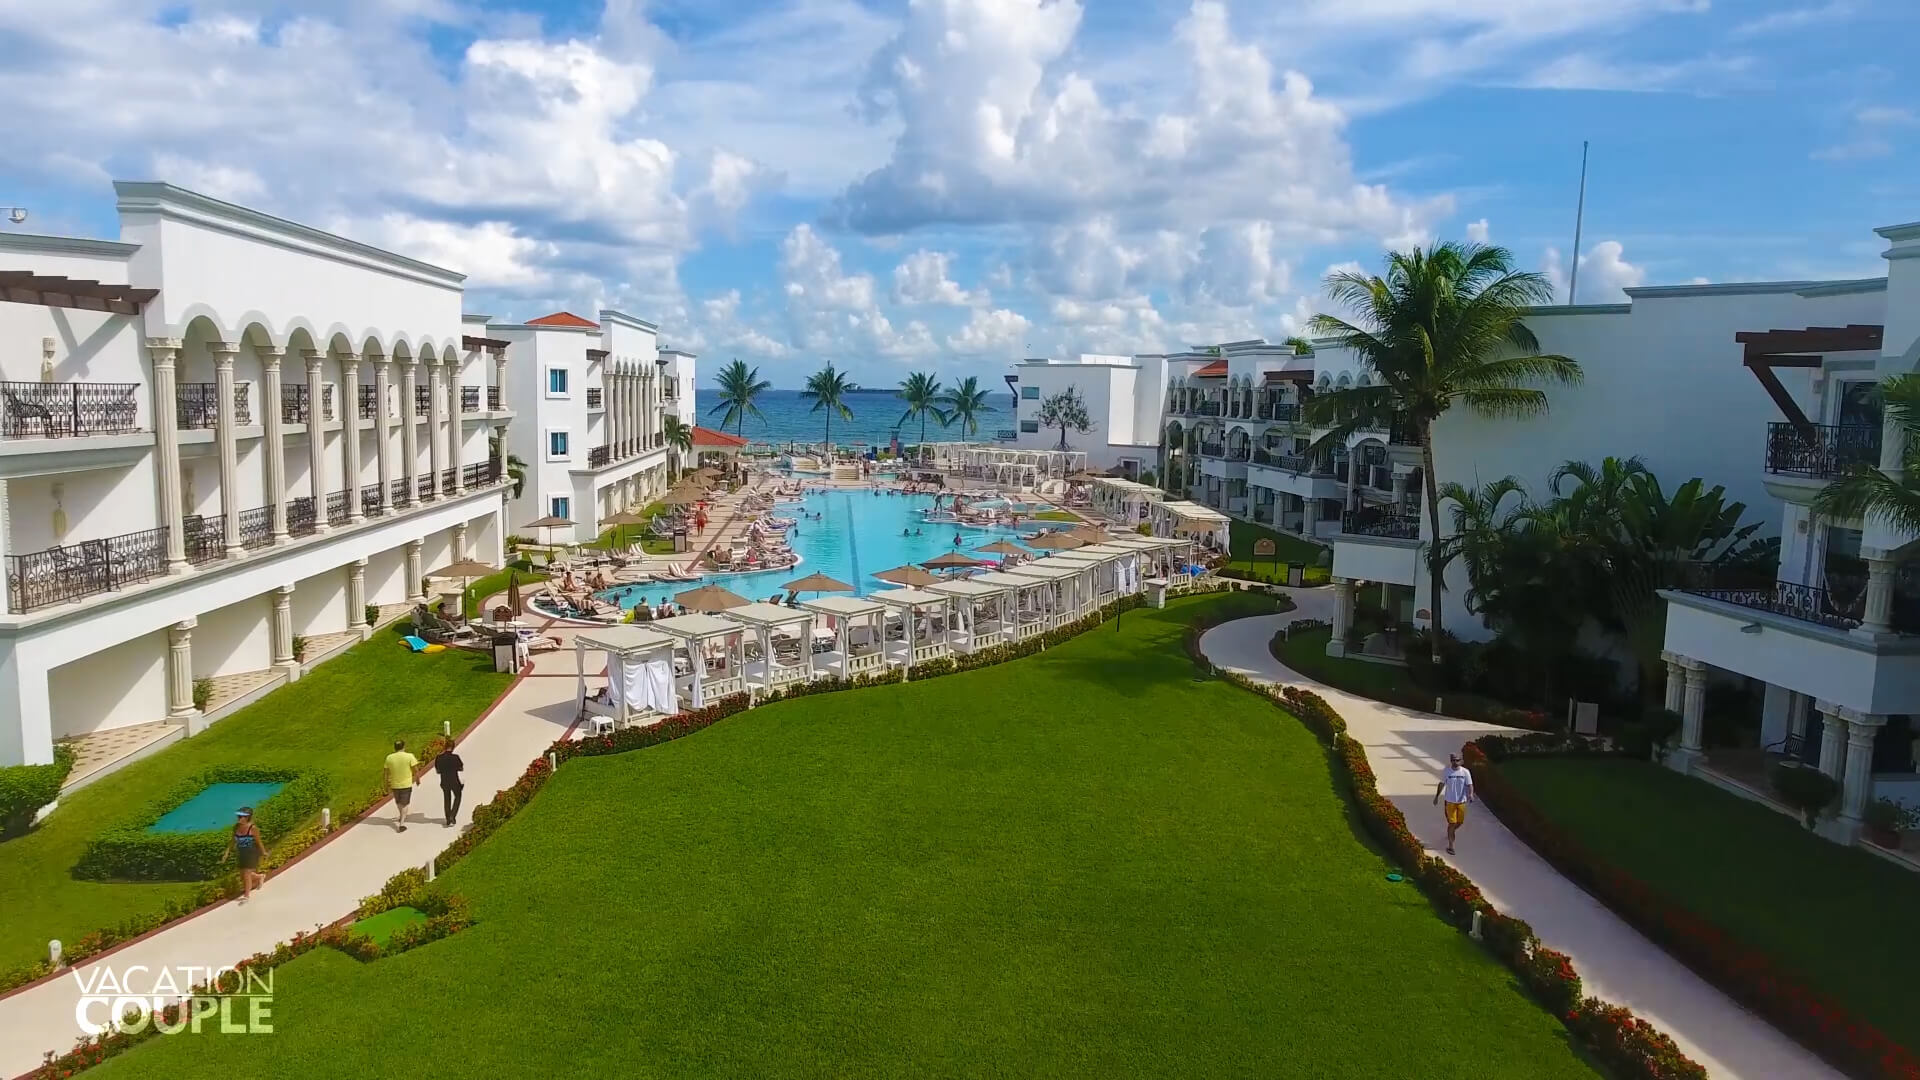 Top 5 all inclusive resorts in mexico vacation couple for Best locations for all inclusive resorts